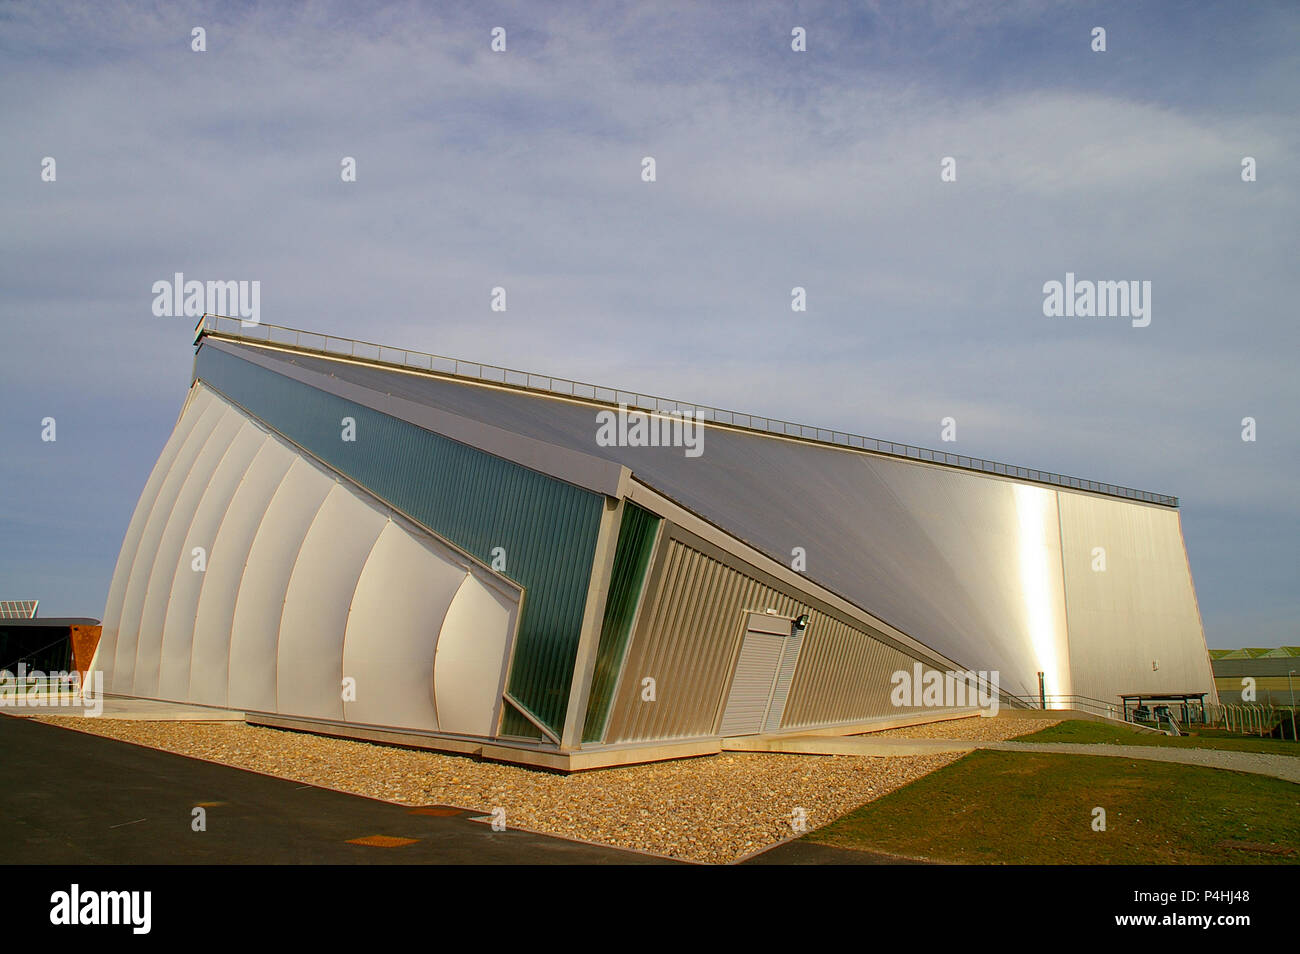 7632318ae72 Futuristic War Stock Photos   Futuristic War Stock Images - Alamy